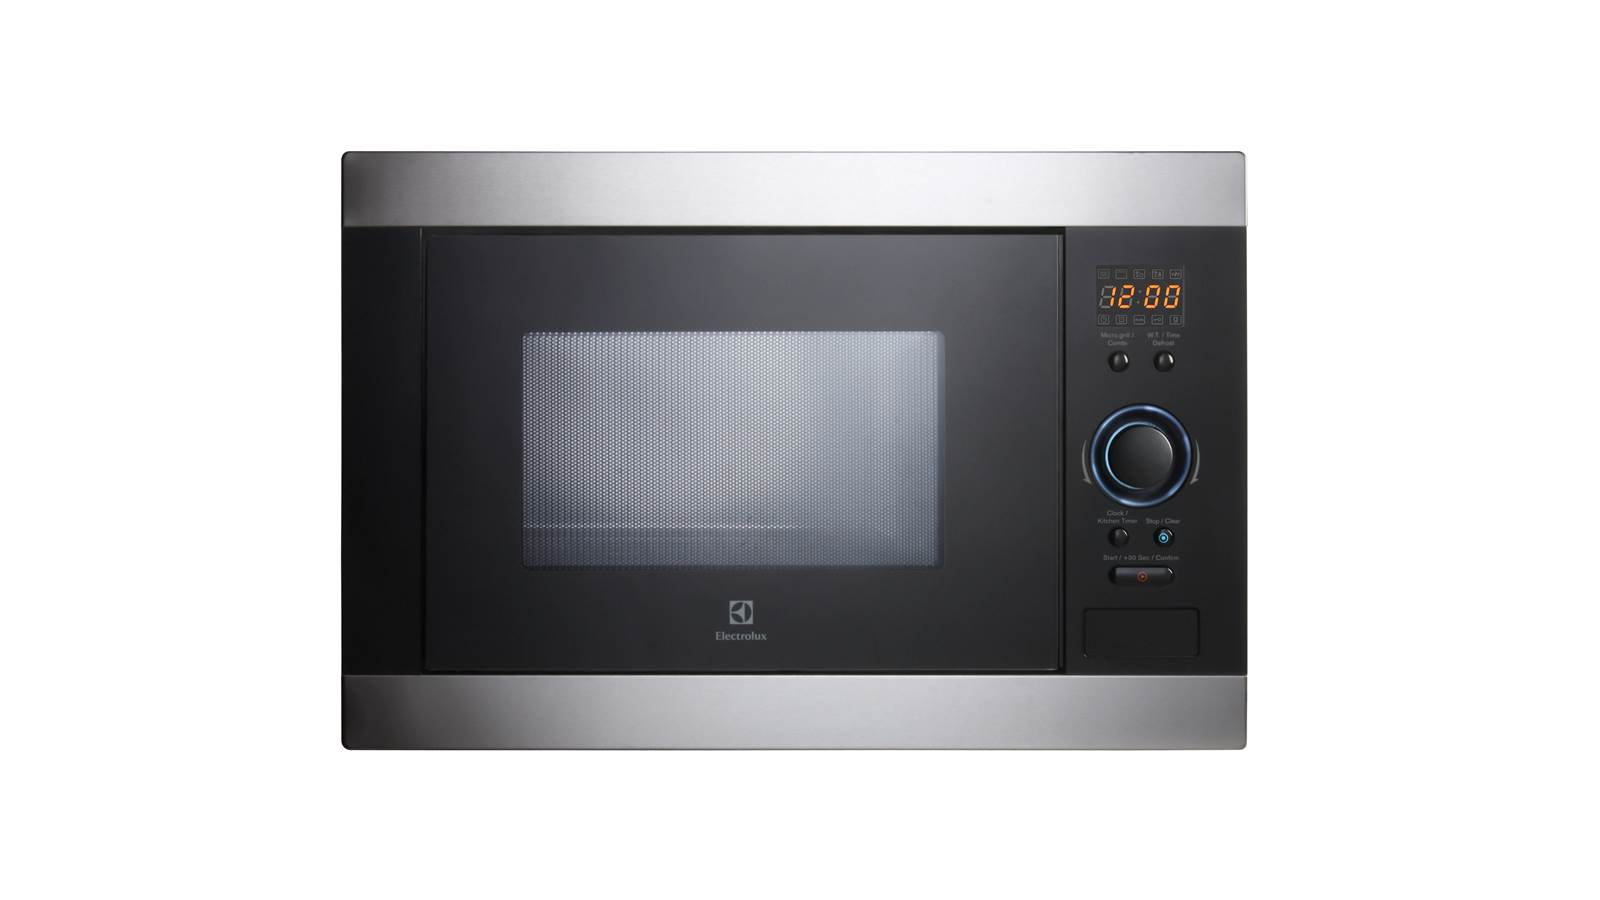 Electrolux 25L Built In Microwave Oven Wgrill Harvey Norman Malaysia